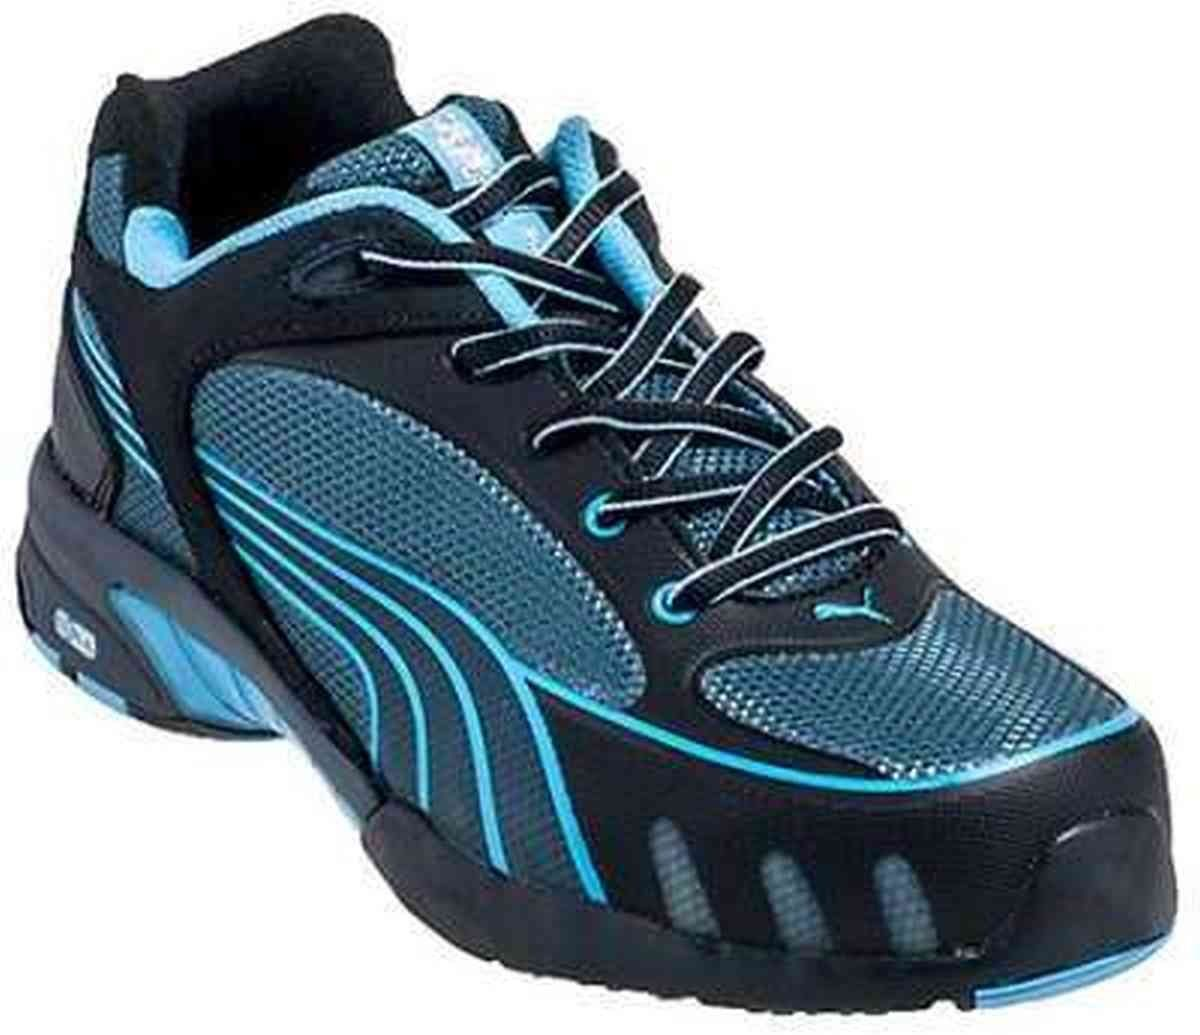 Womenu0026#39;s Puma Safety Fuse Motion SD Low Steel Toe Shoes ...